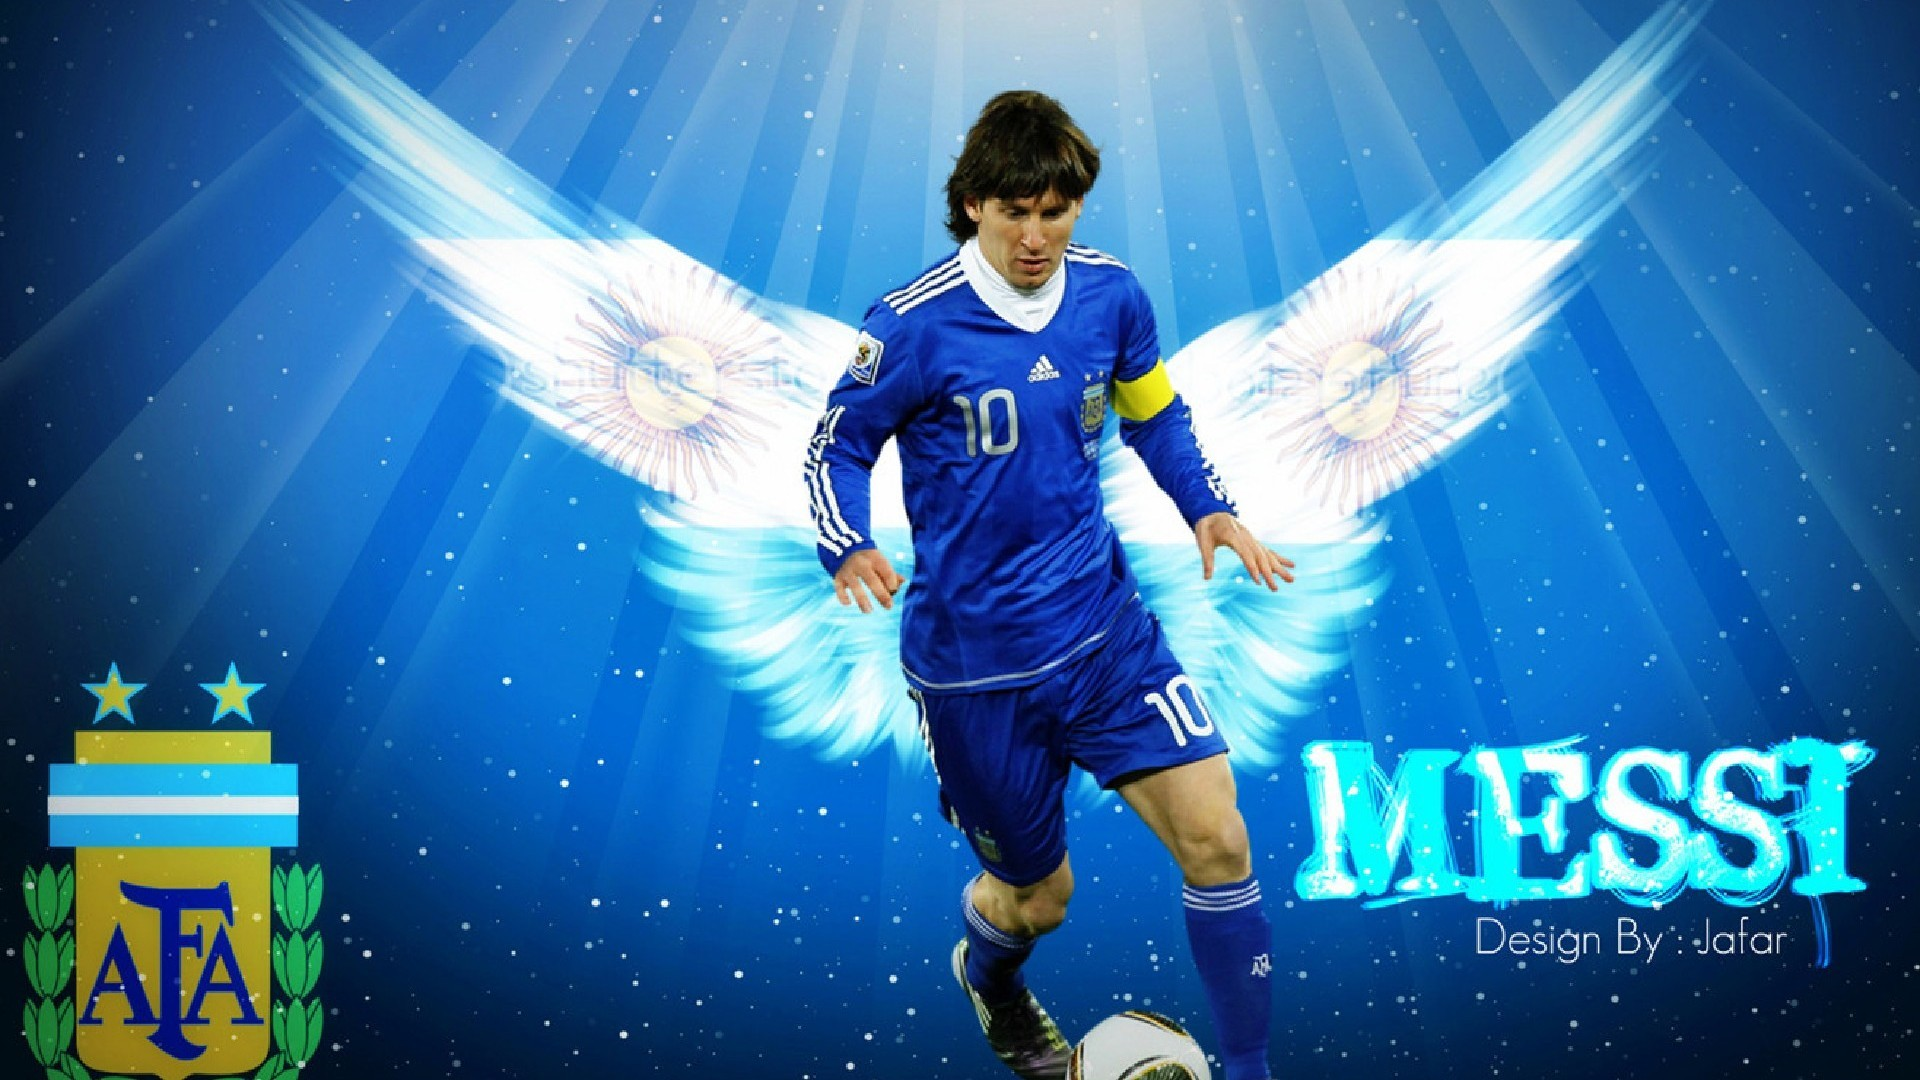 1920x1080 Cool Soccer Wallpapers Messi